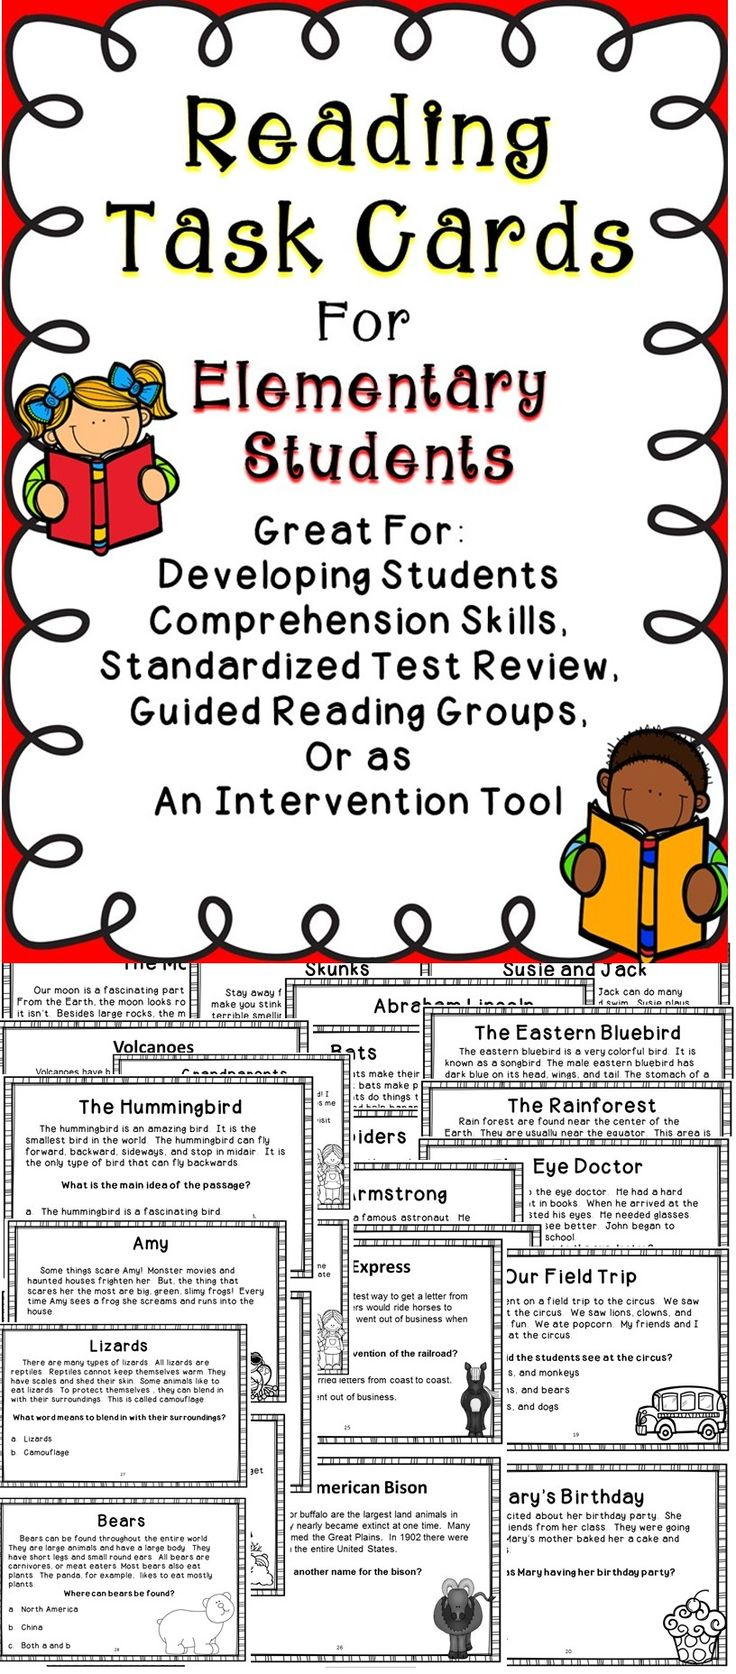 Worksheet Improve Reading Comprehension 3rd Grade 1000 ideas about 2nd grade reading comprehension on pinterest task cards for elementary students includes 46 to improve